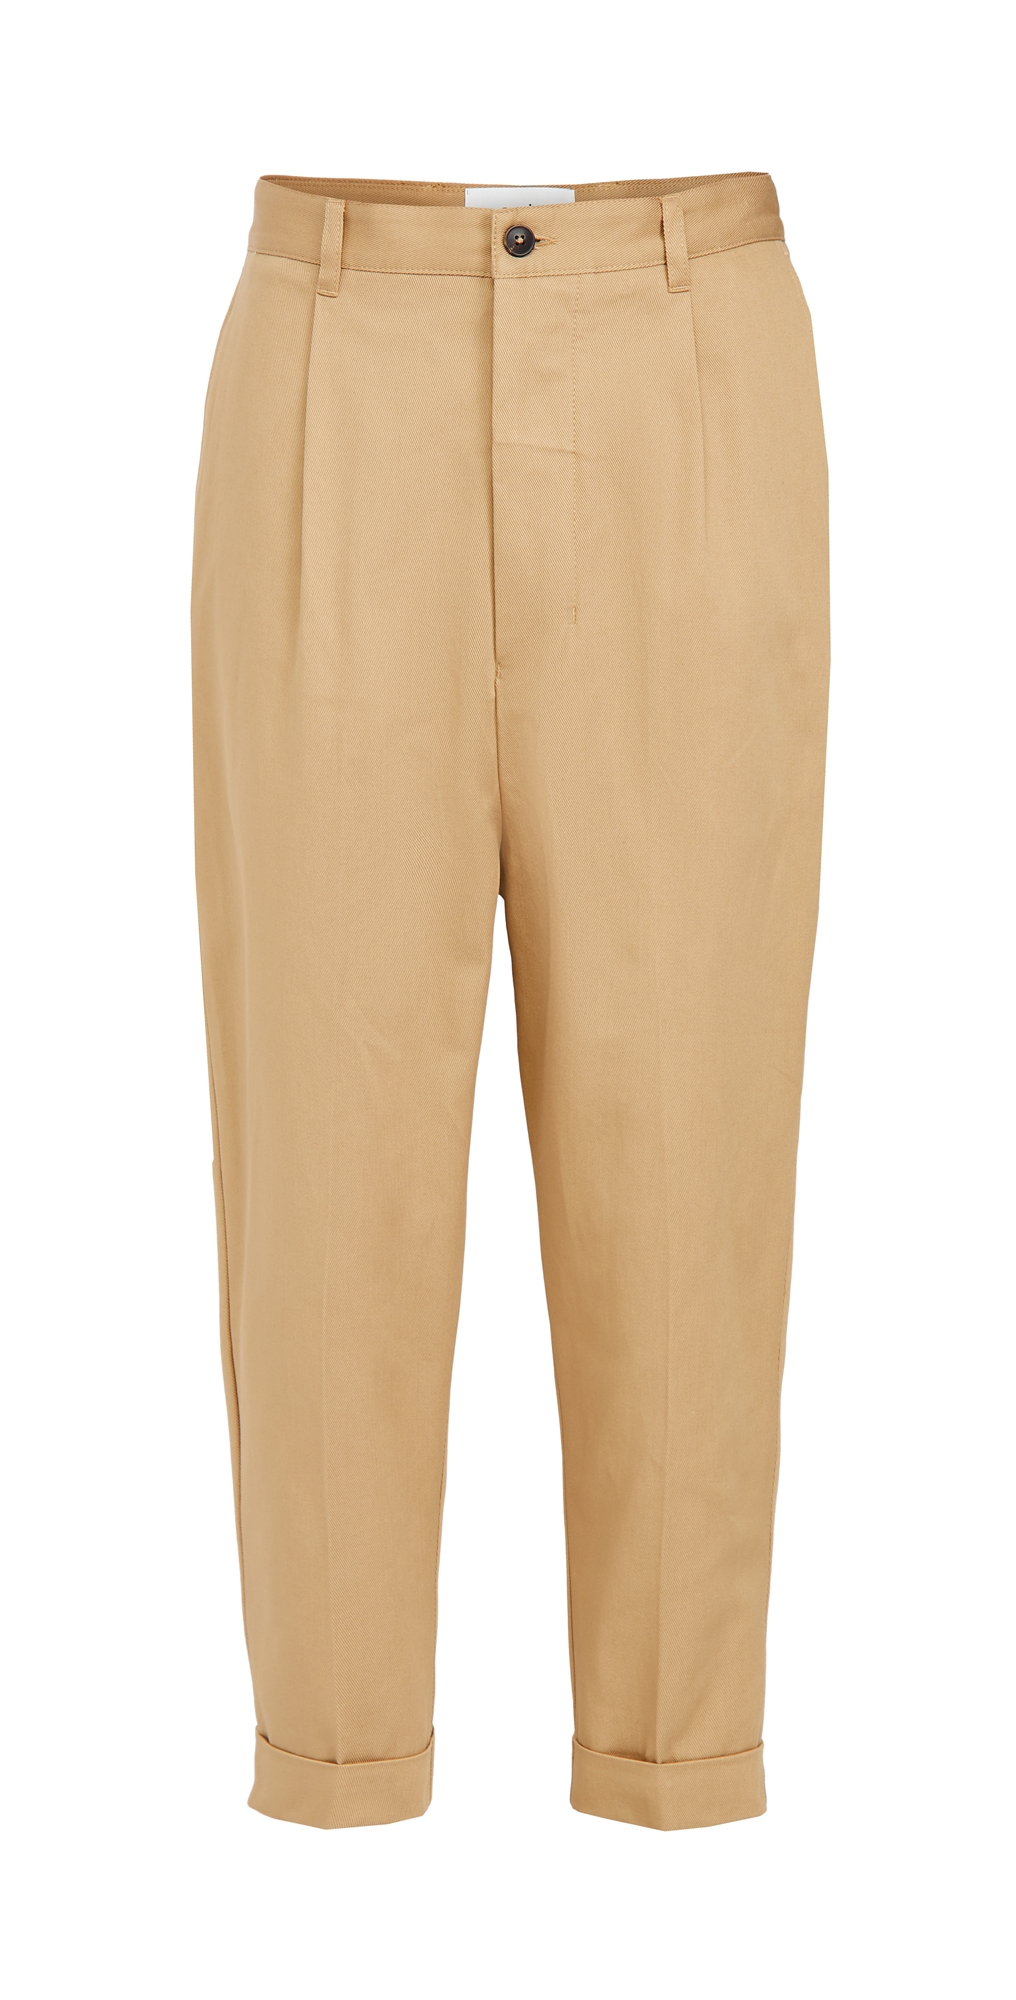 Cotton Oversized Carrot Fit Trousers